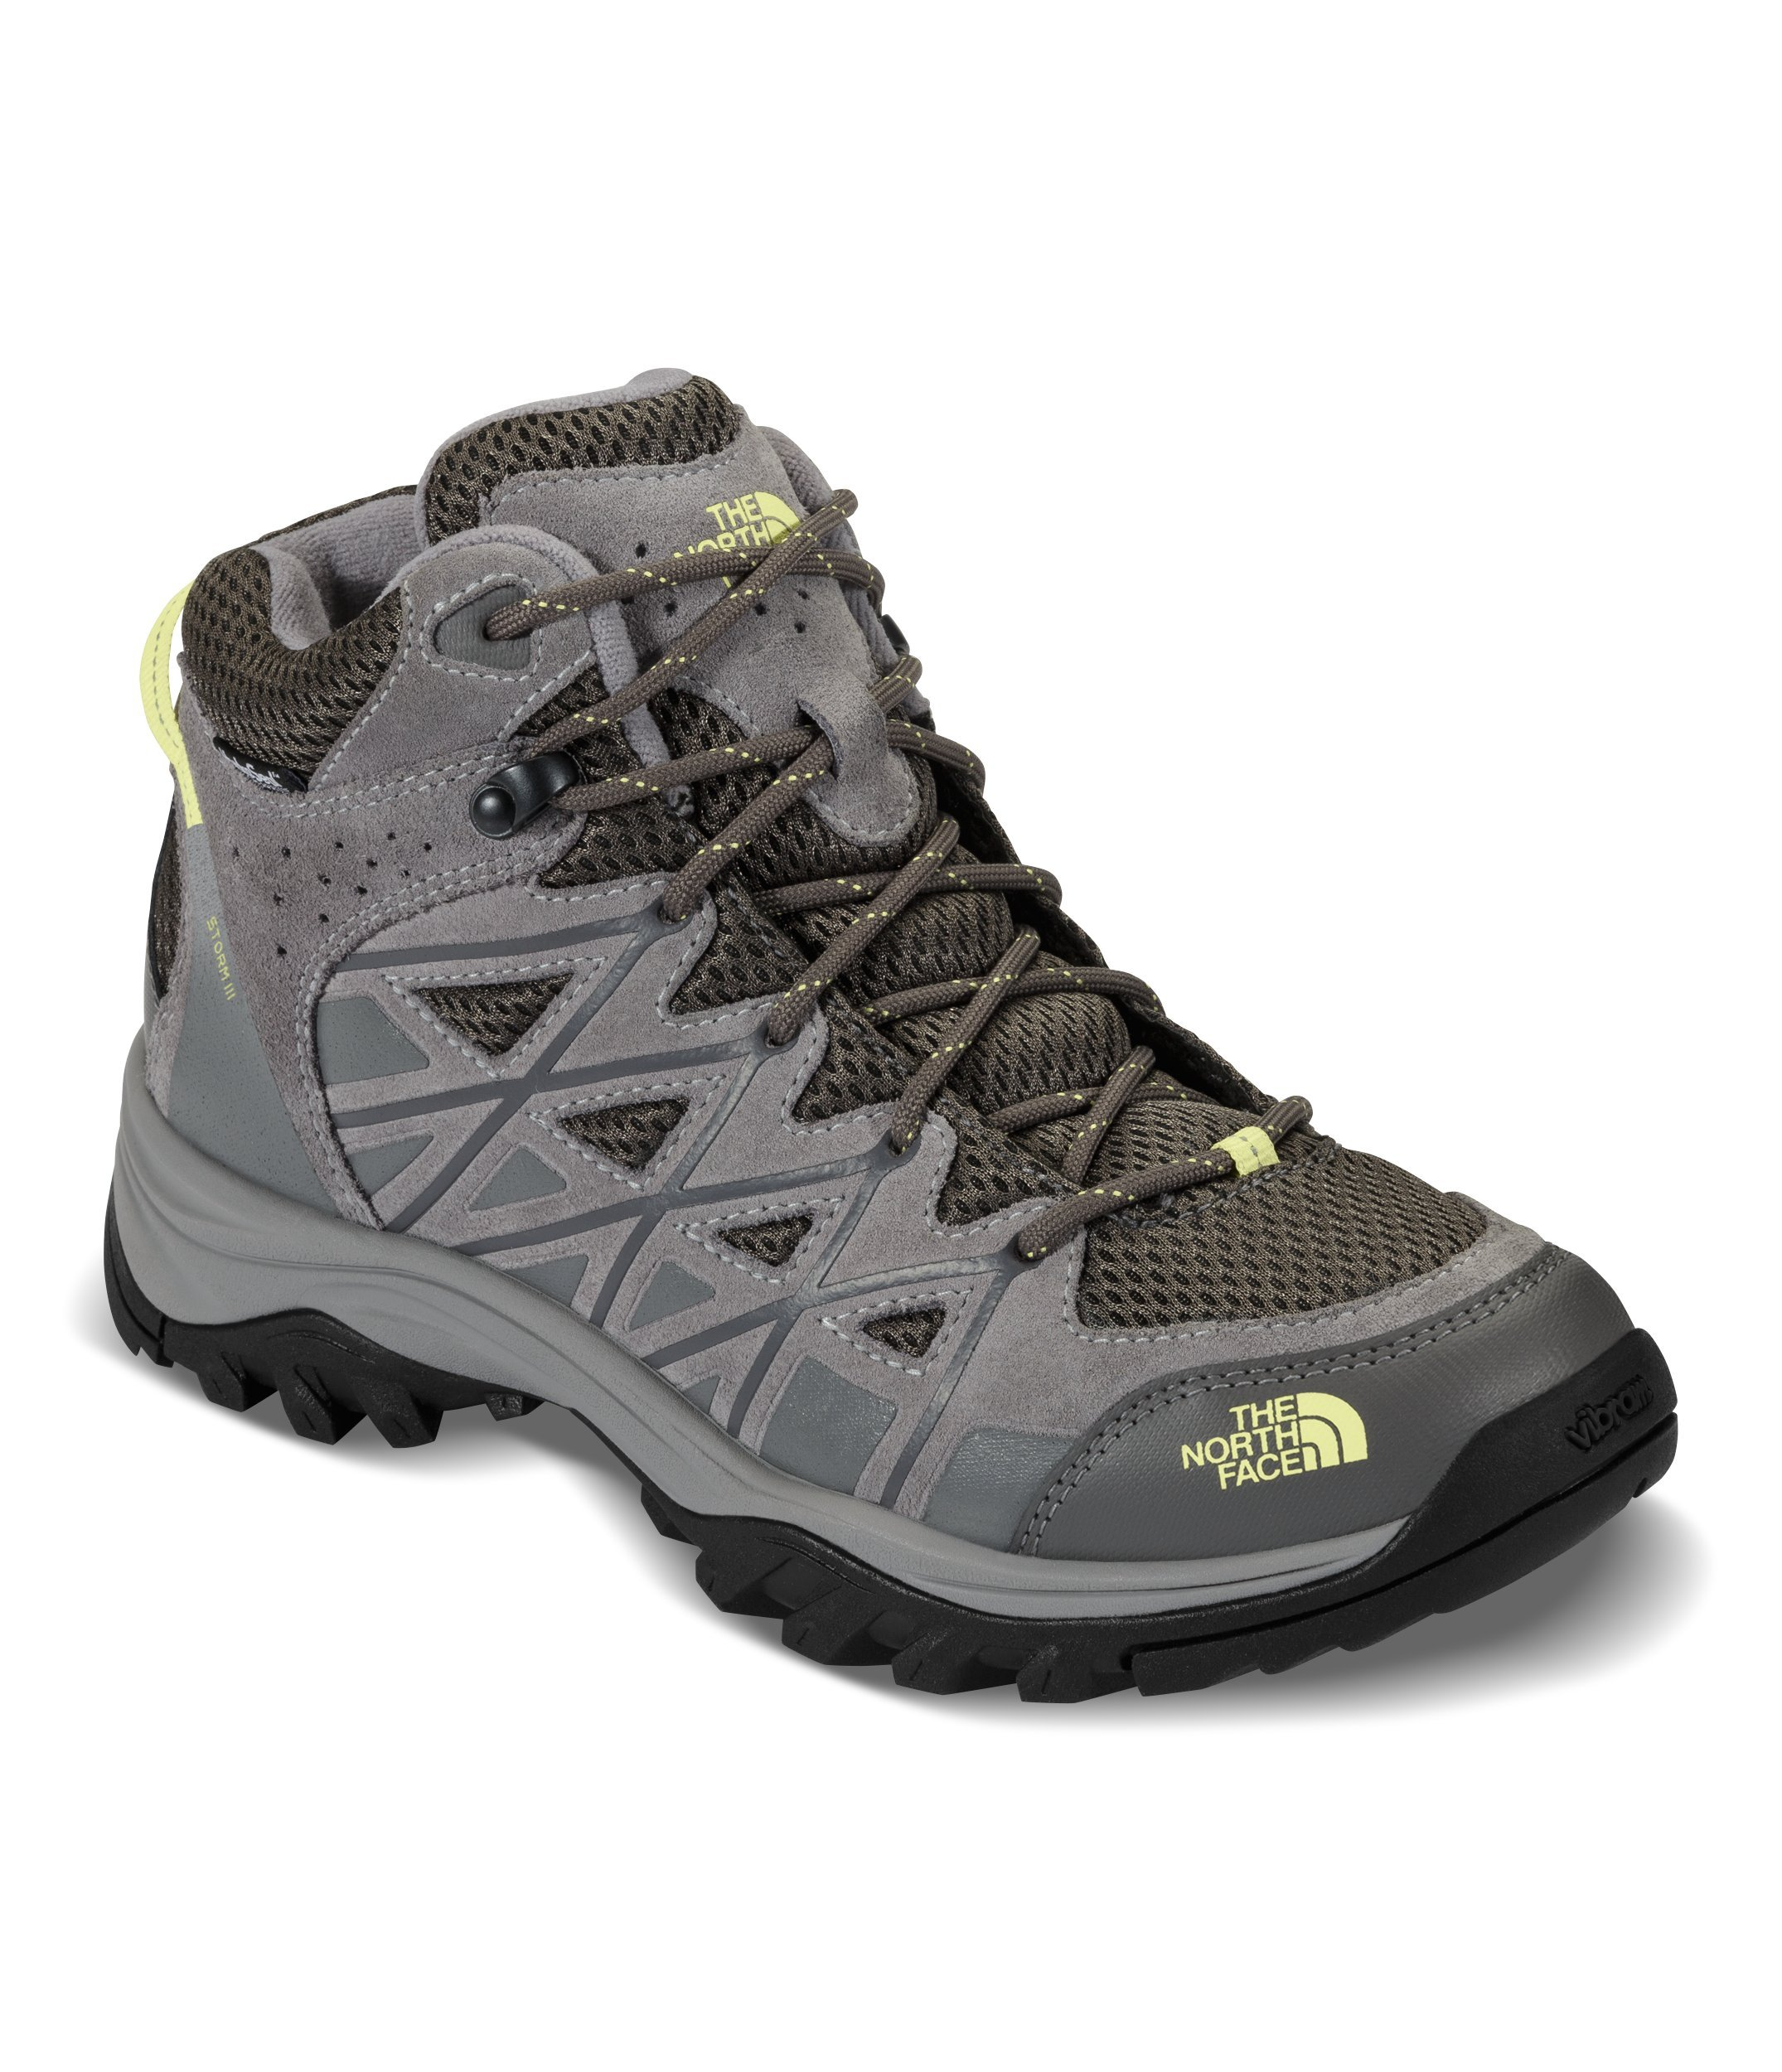 The North Face Women's Storm III Mid Waterproof Hiking Shoes Dargull Gray and Chiffon Yellow - 9